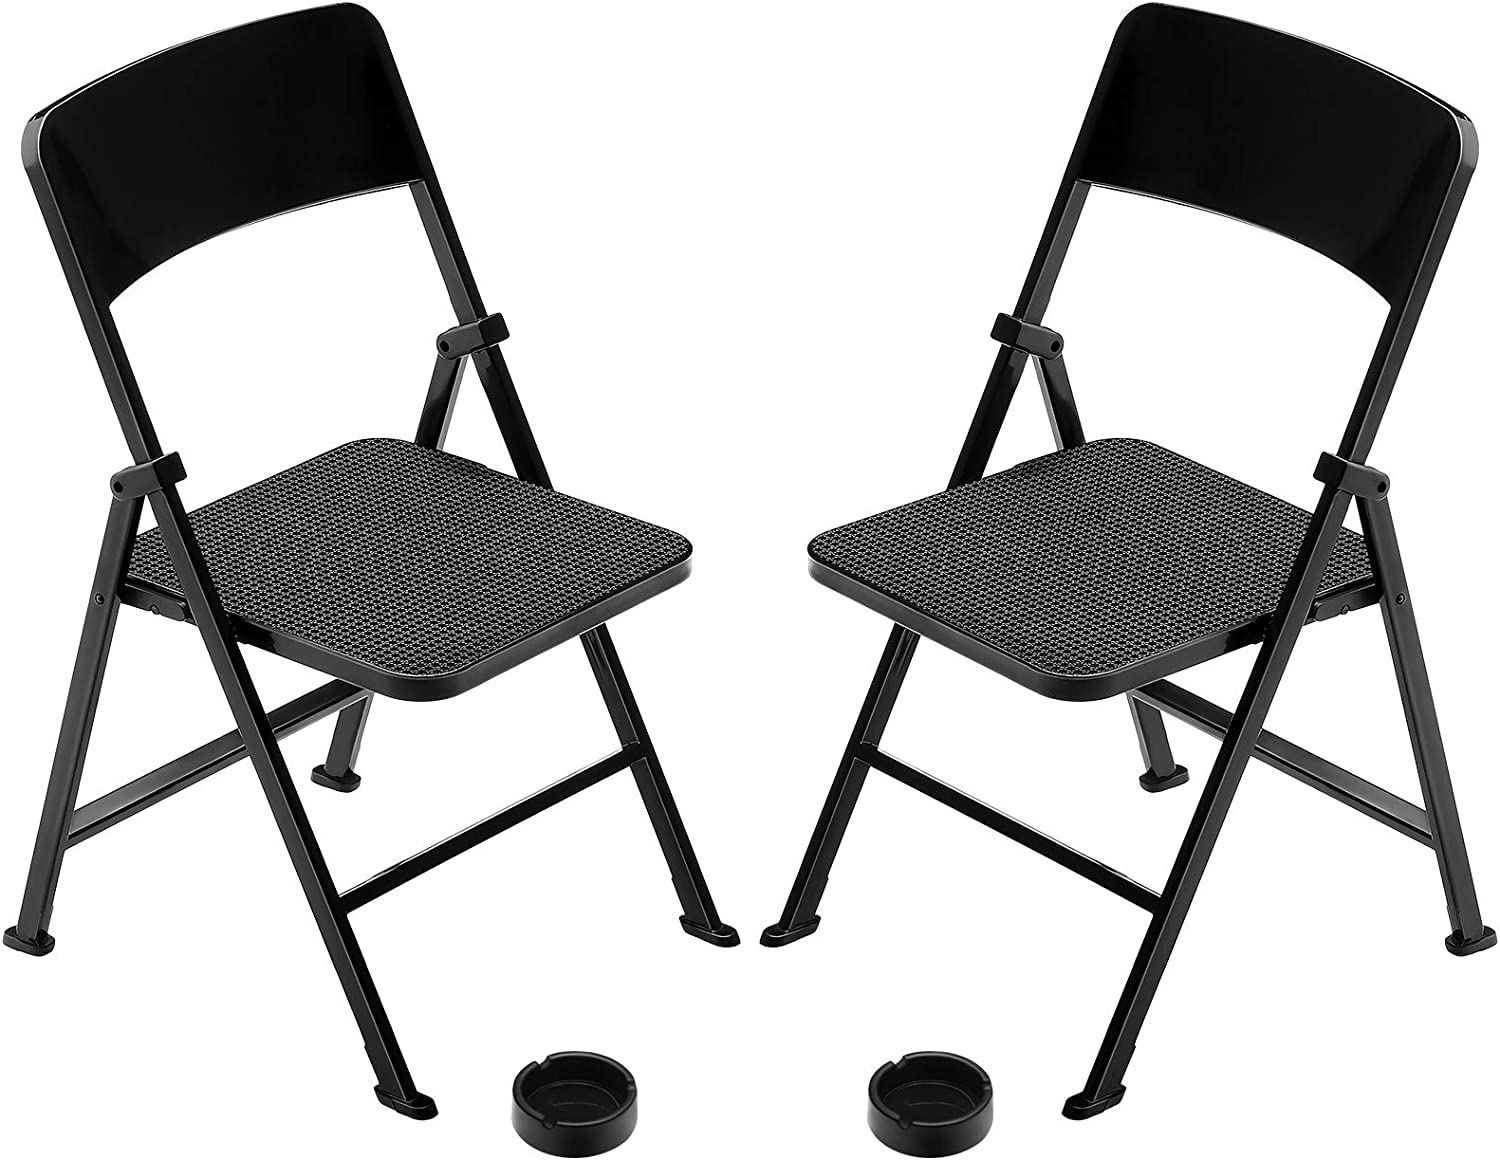 1/6 Scale Folding Mini Chair Dolls Folding Chair Playsets Miniature Furniture Toy Folding Doll Chairs Decoration for Birthday Baby Shower Holiday Festival Present (Black)